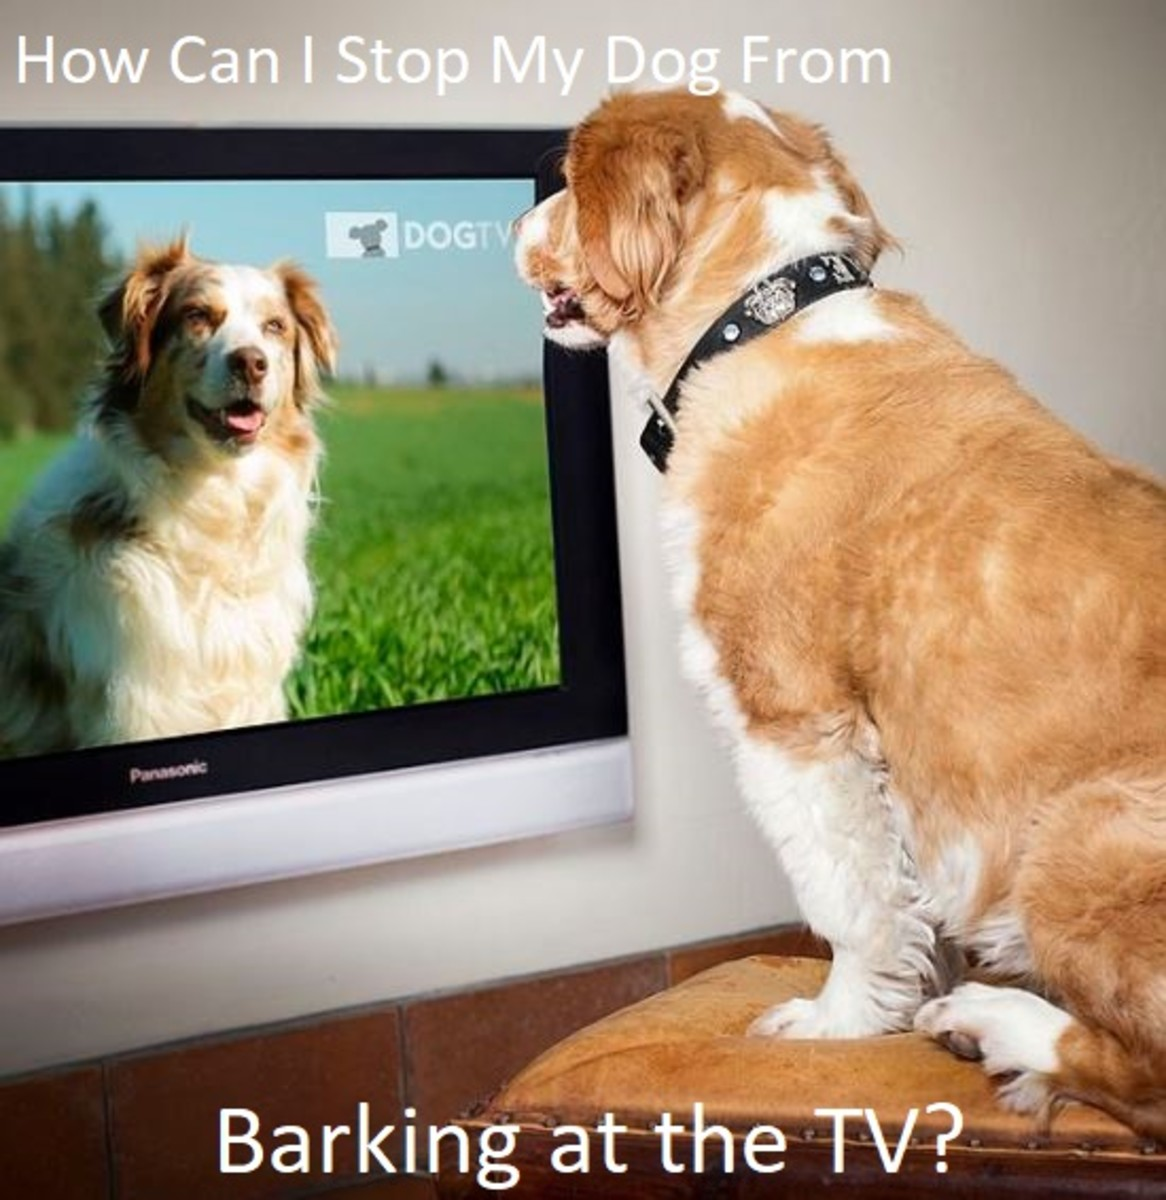 How To Keep A Dog From Barking At The Tv Pethelpful